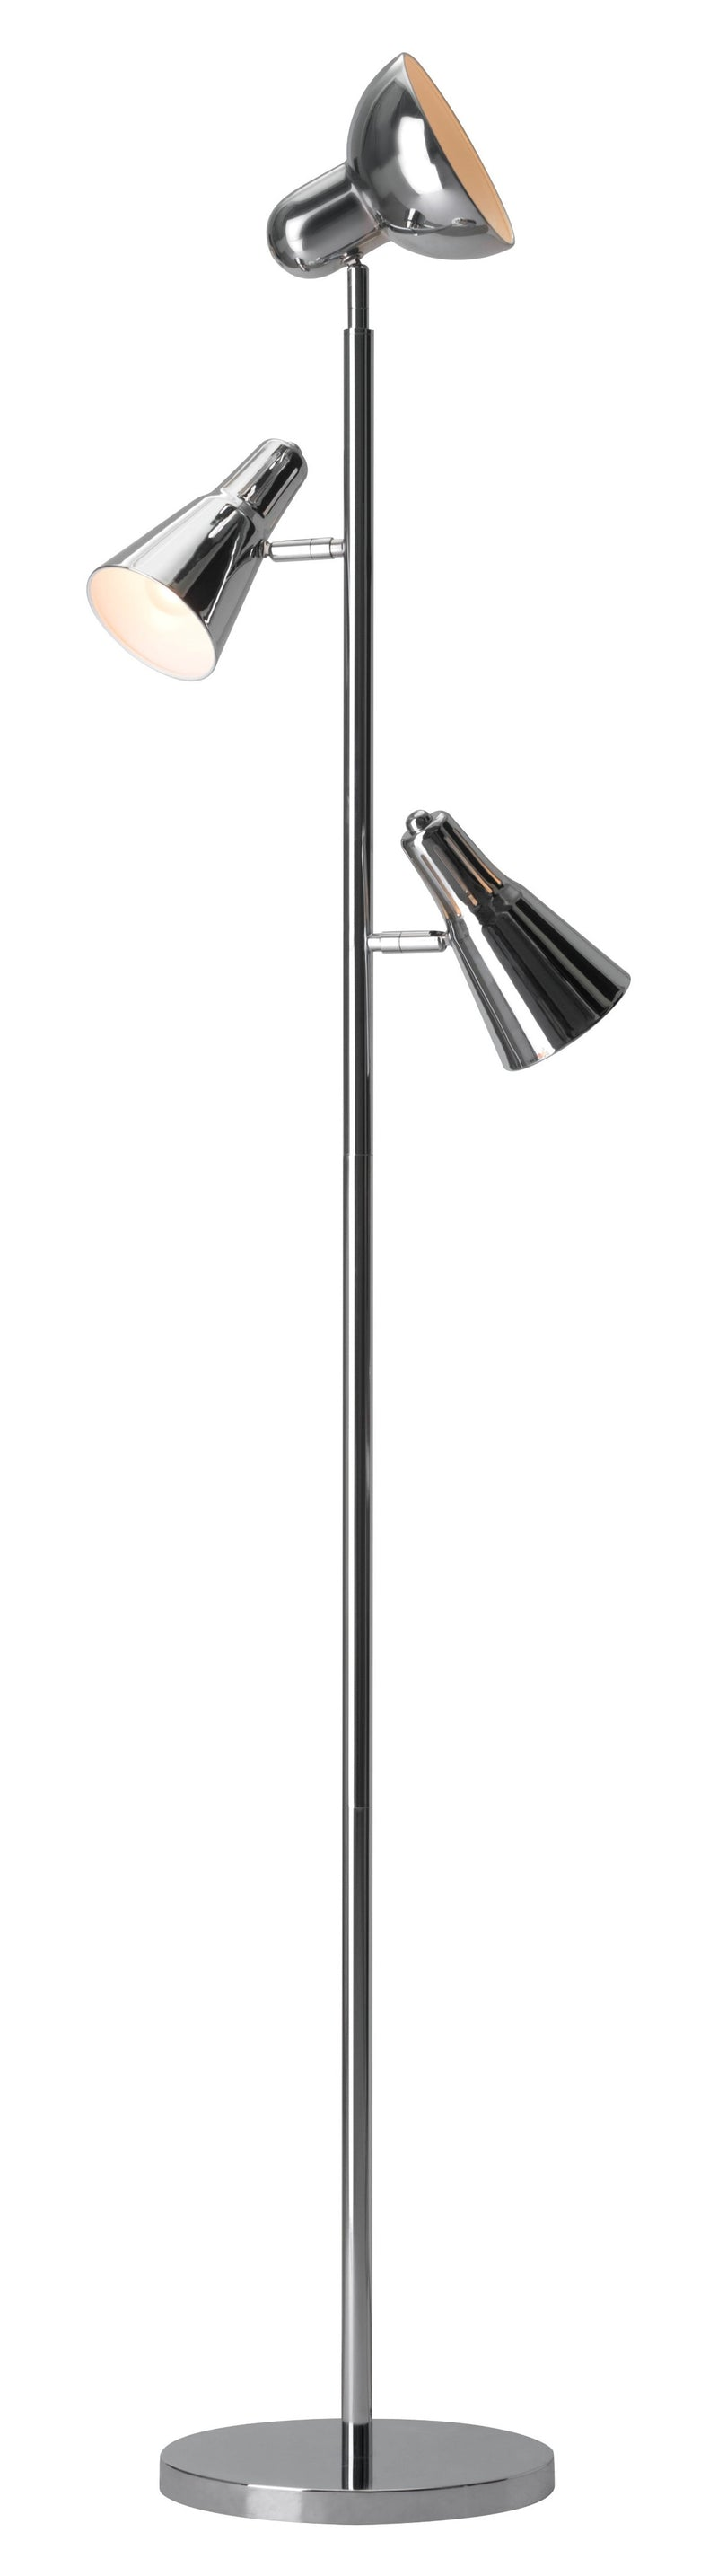 Shuttle Floor Lamp (Chrome)